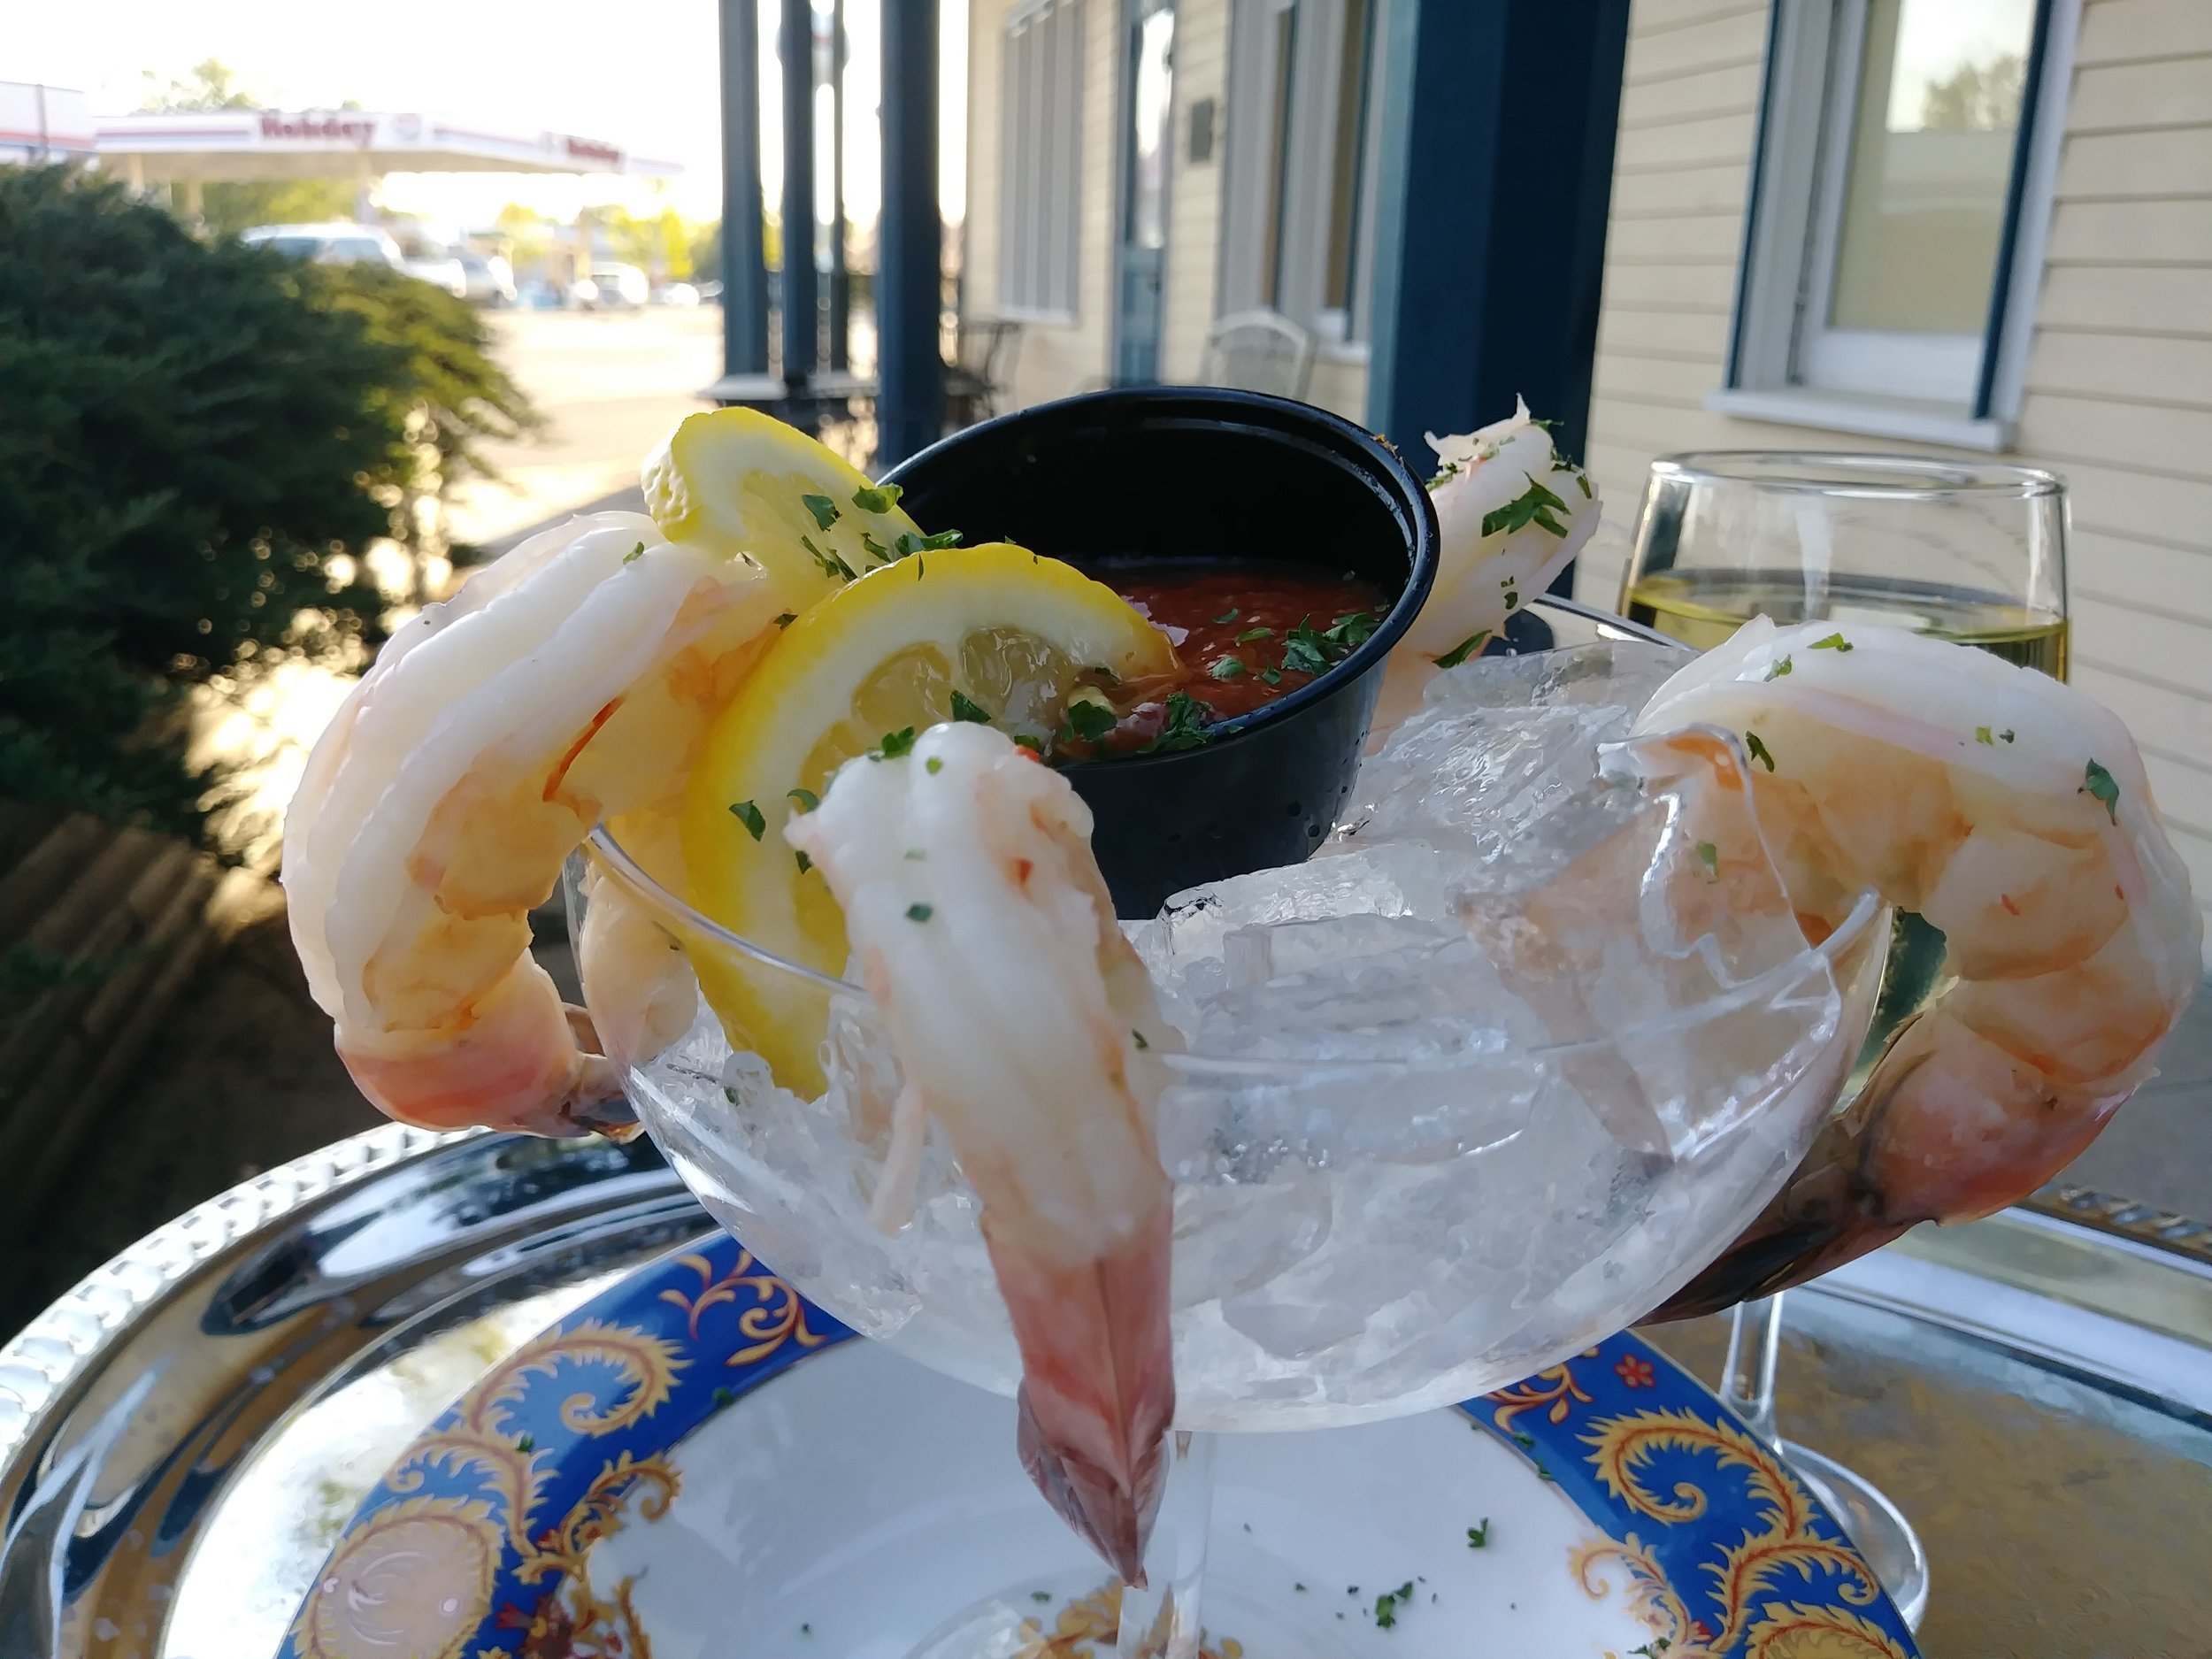 shrimp cocktail - Four fresh jumbo shrimp, chilled and served with The Thayer's homemade cocktail sauce $9.99